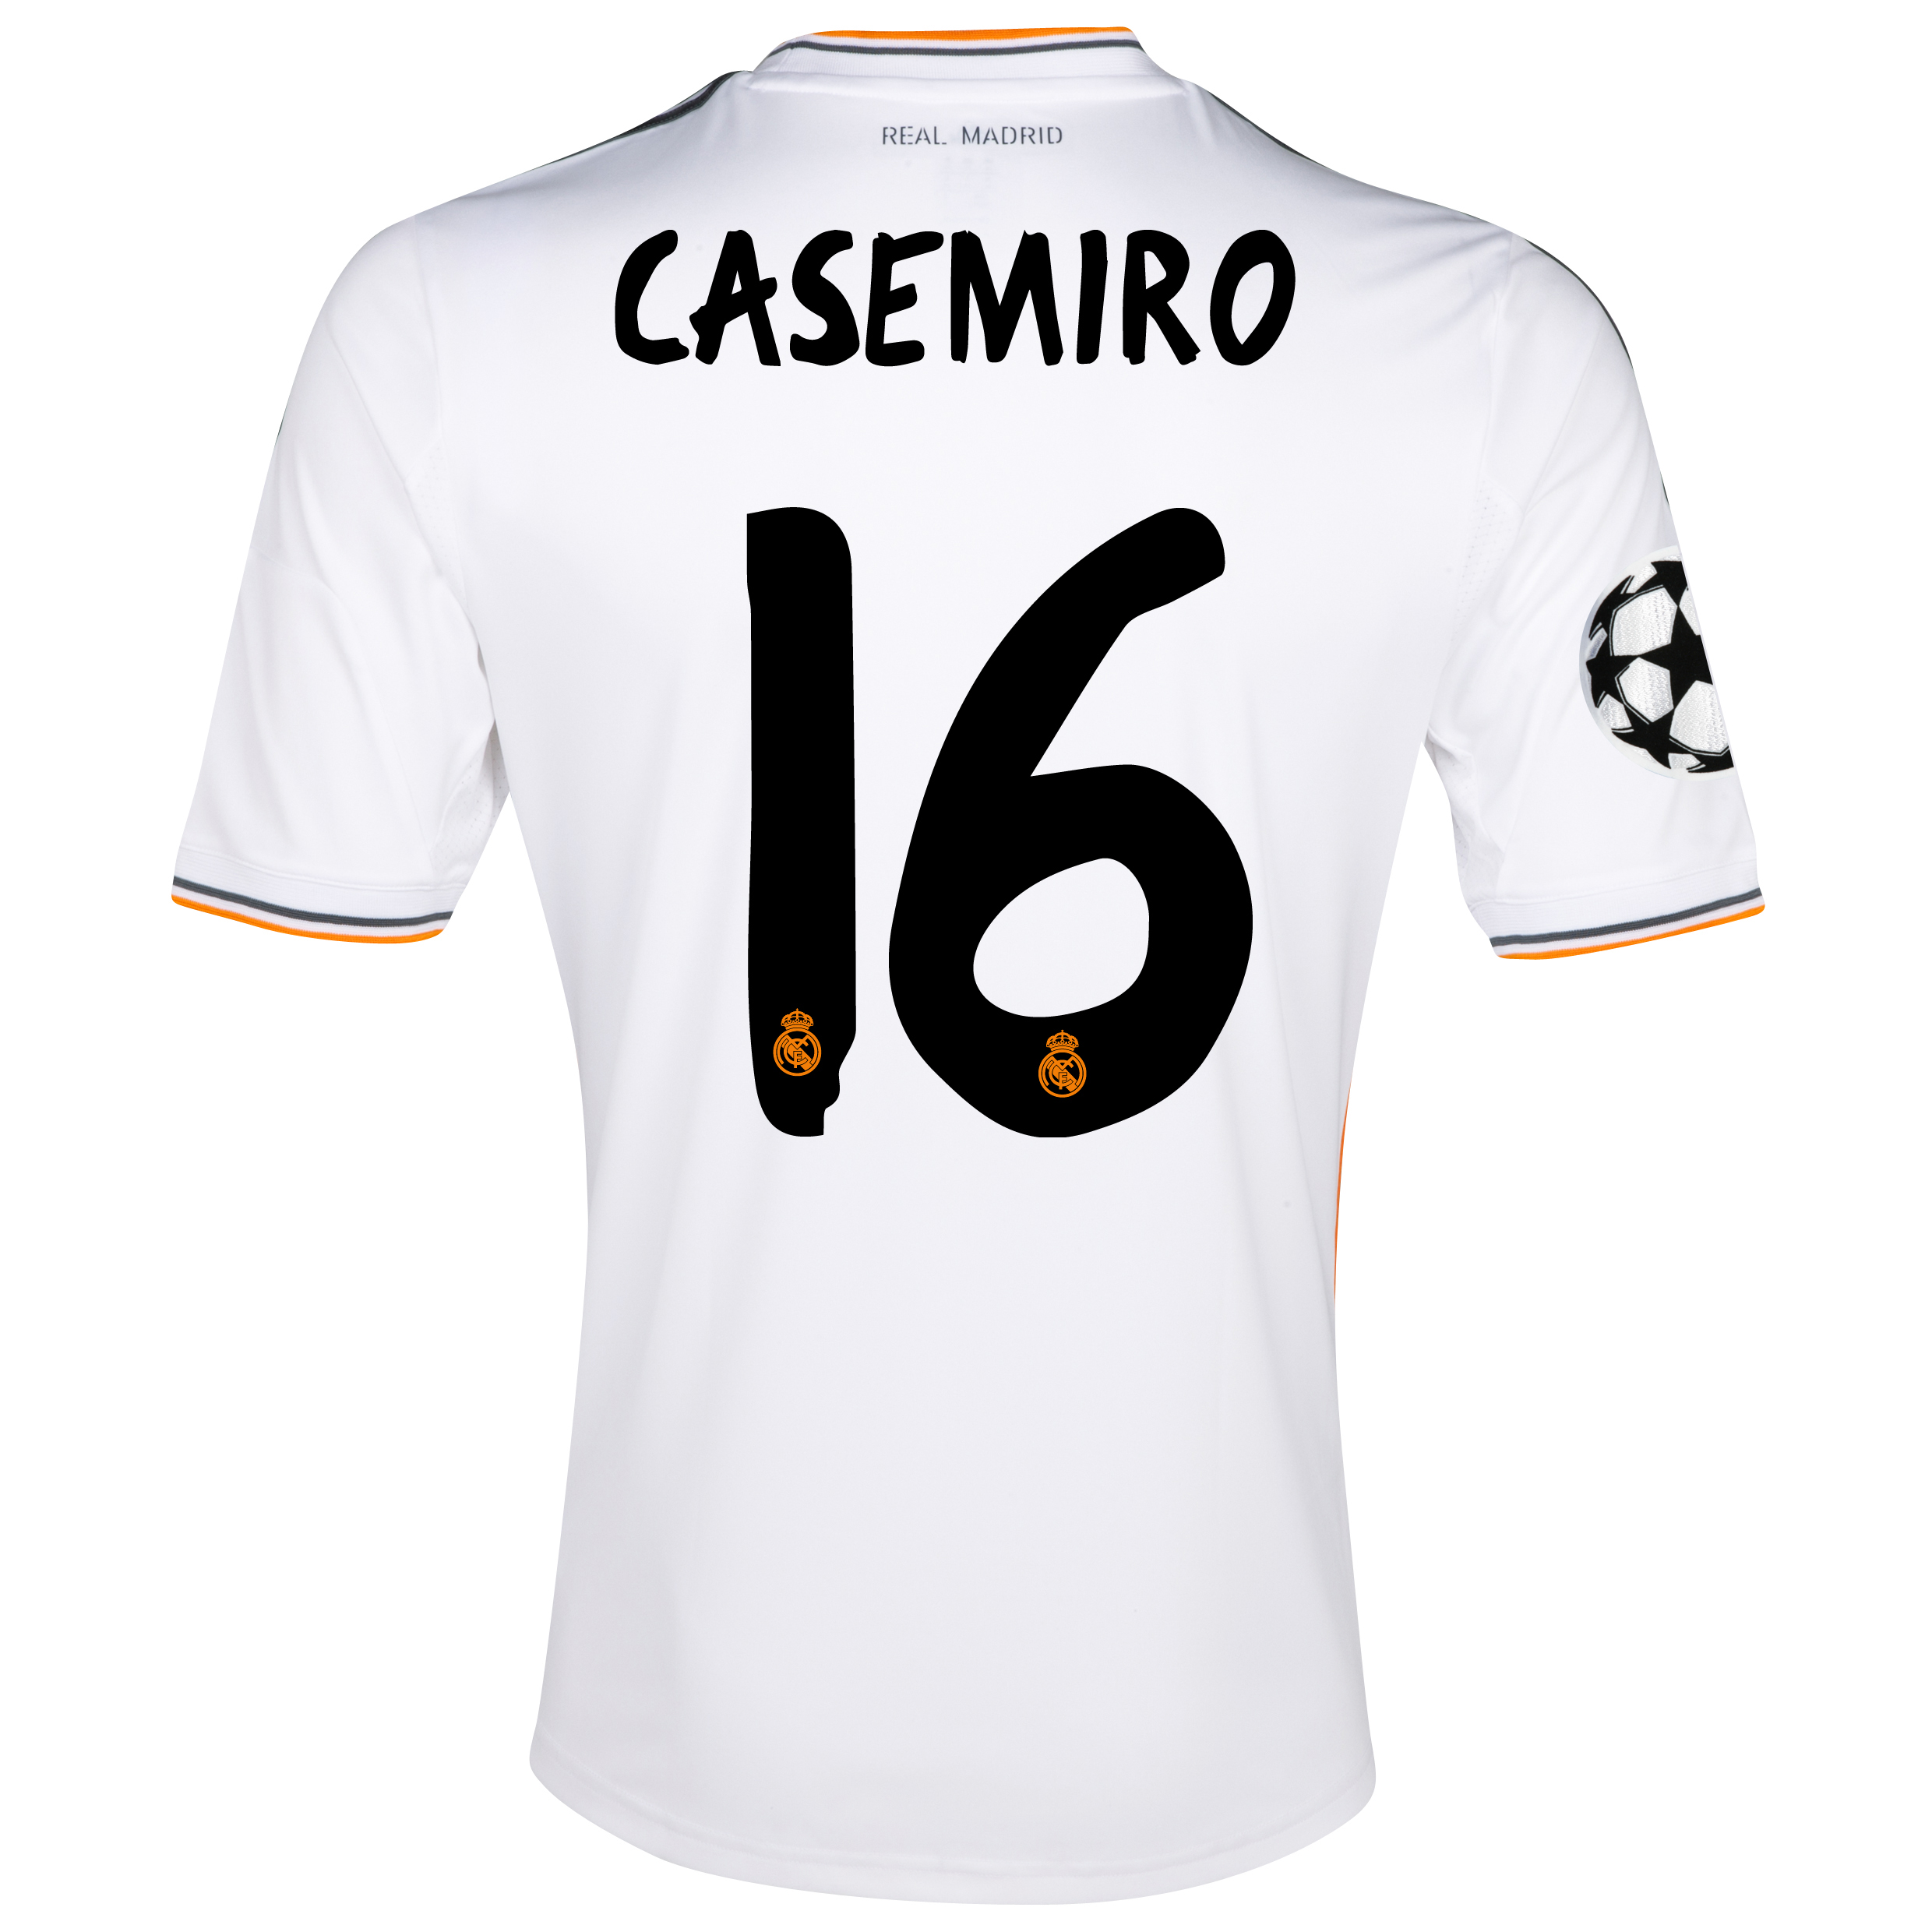 Real Madrid UEFA Champions League Home Shirt 2013/14 - kids with Casemiro 16 printing